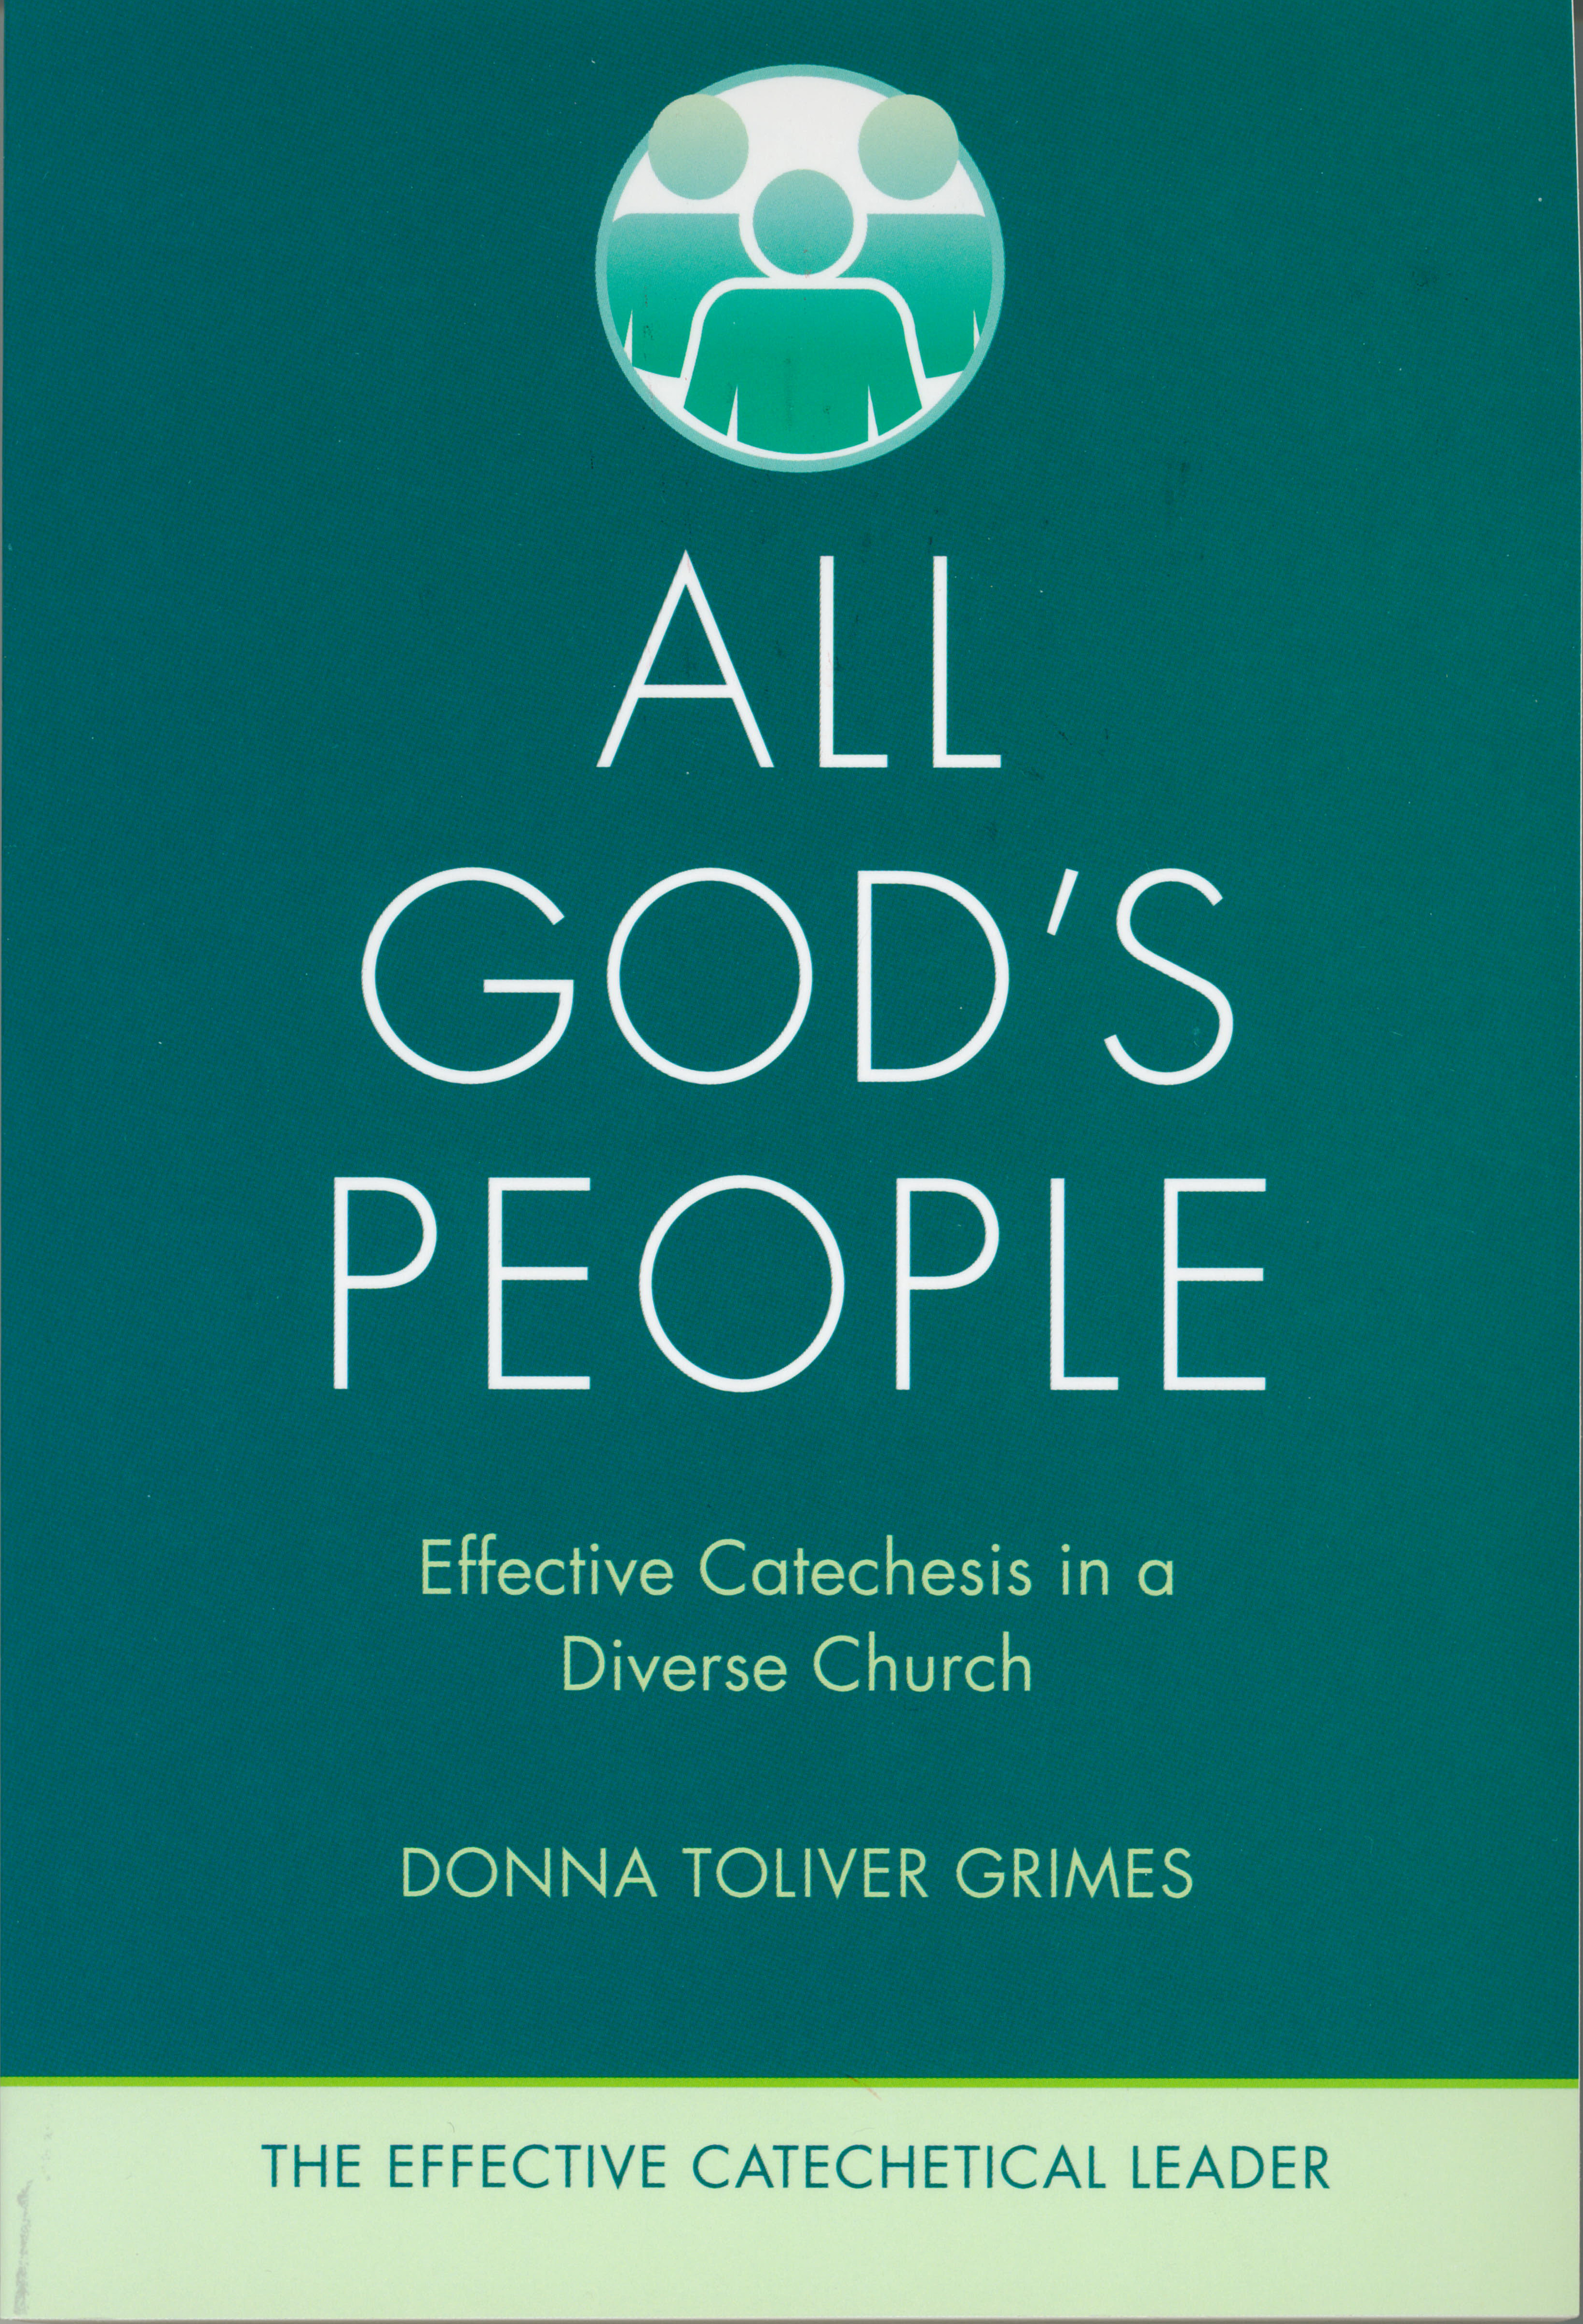 All God's People (Effective Catechetical Leader) by Donna Toliver Grimes 108-9780829445343